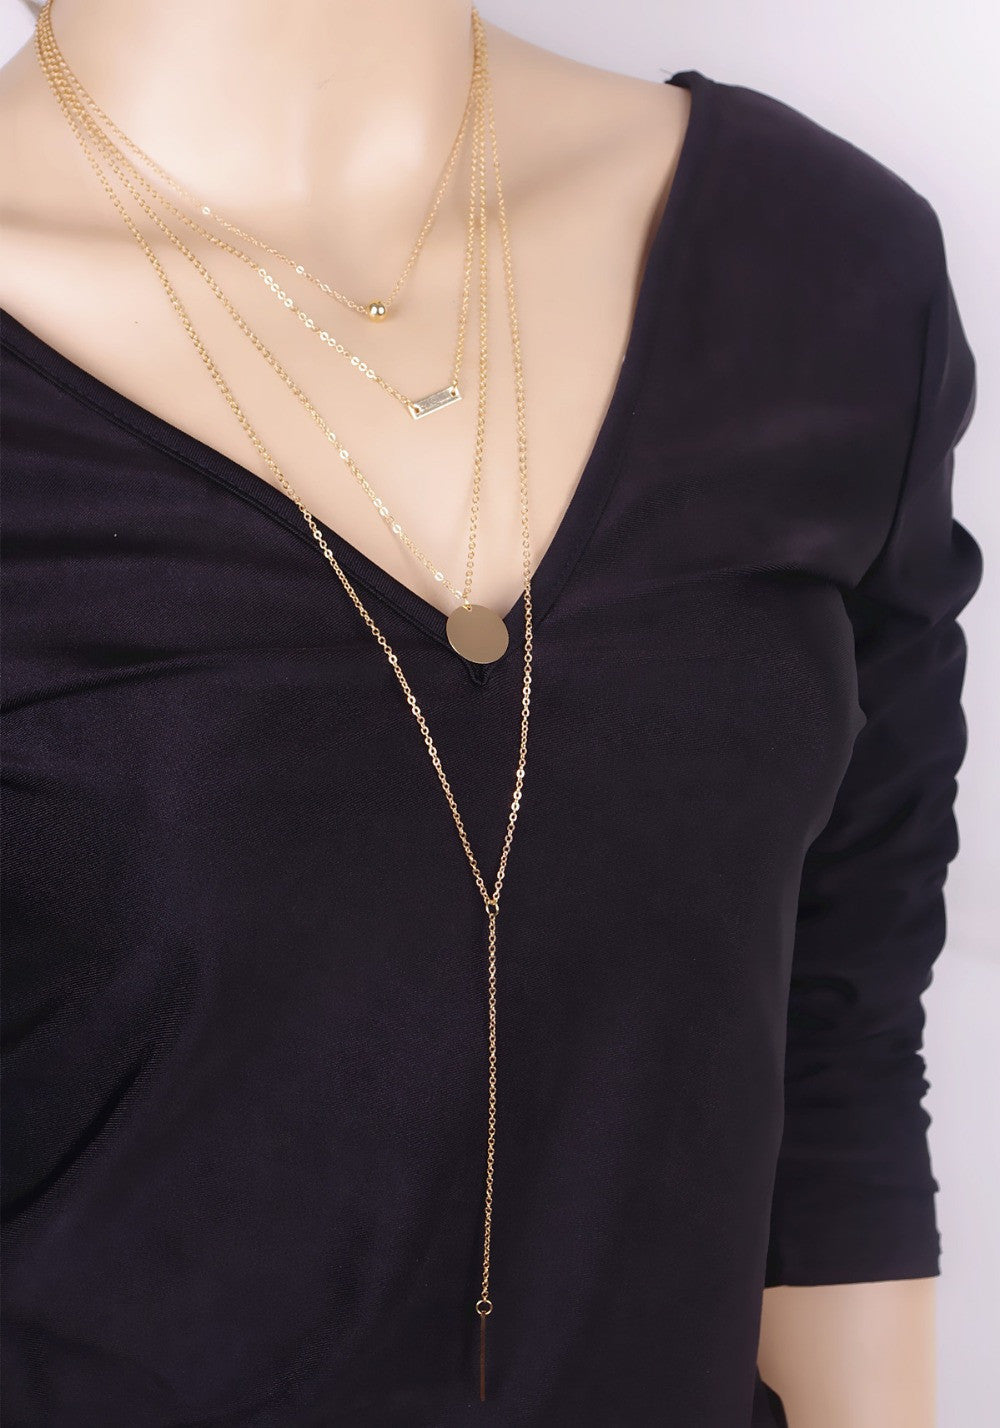 Gold Tone Multi-Layer Chain - Four Layer Simple Metal Long Necklaces & Pendants